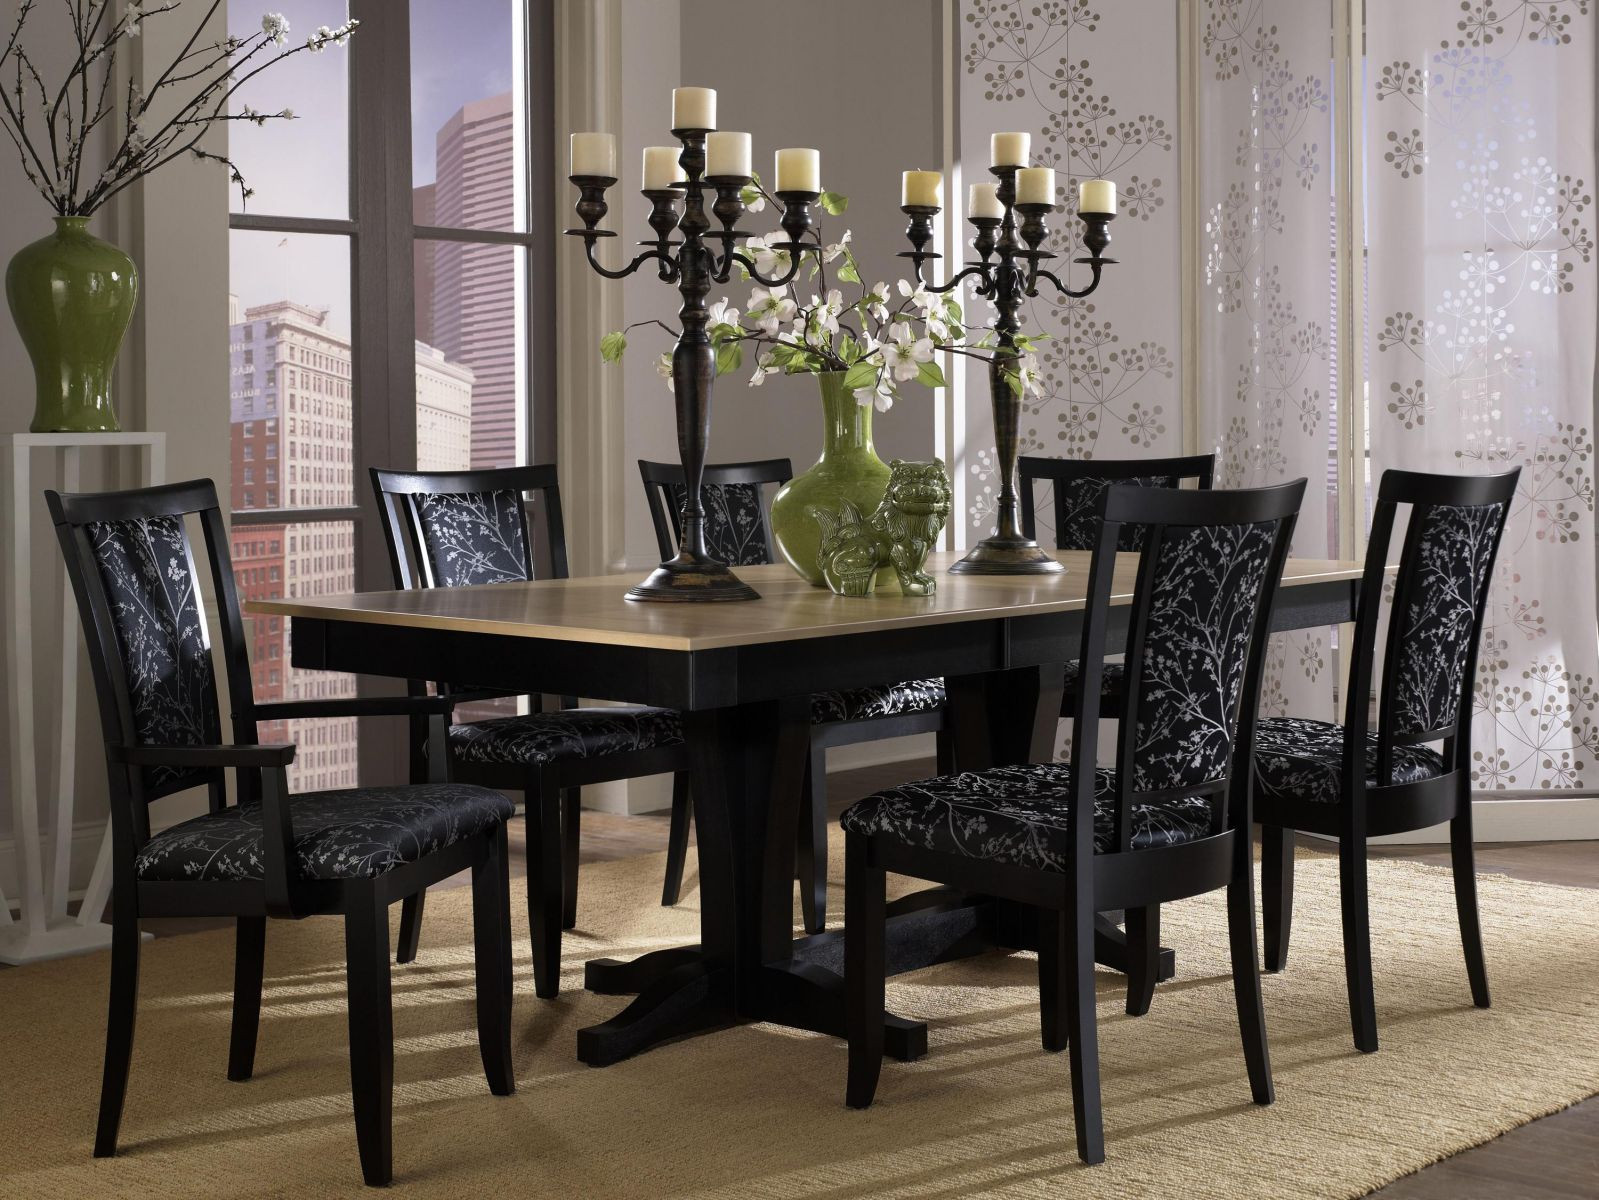 Best ideas about Dining Room Set . Save or Pin The Design Contemporary Dining Room Sets Amaza Design Now.